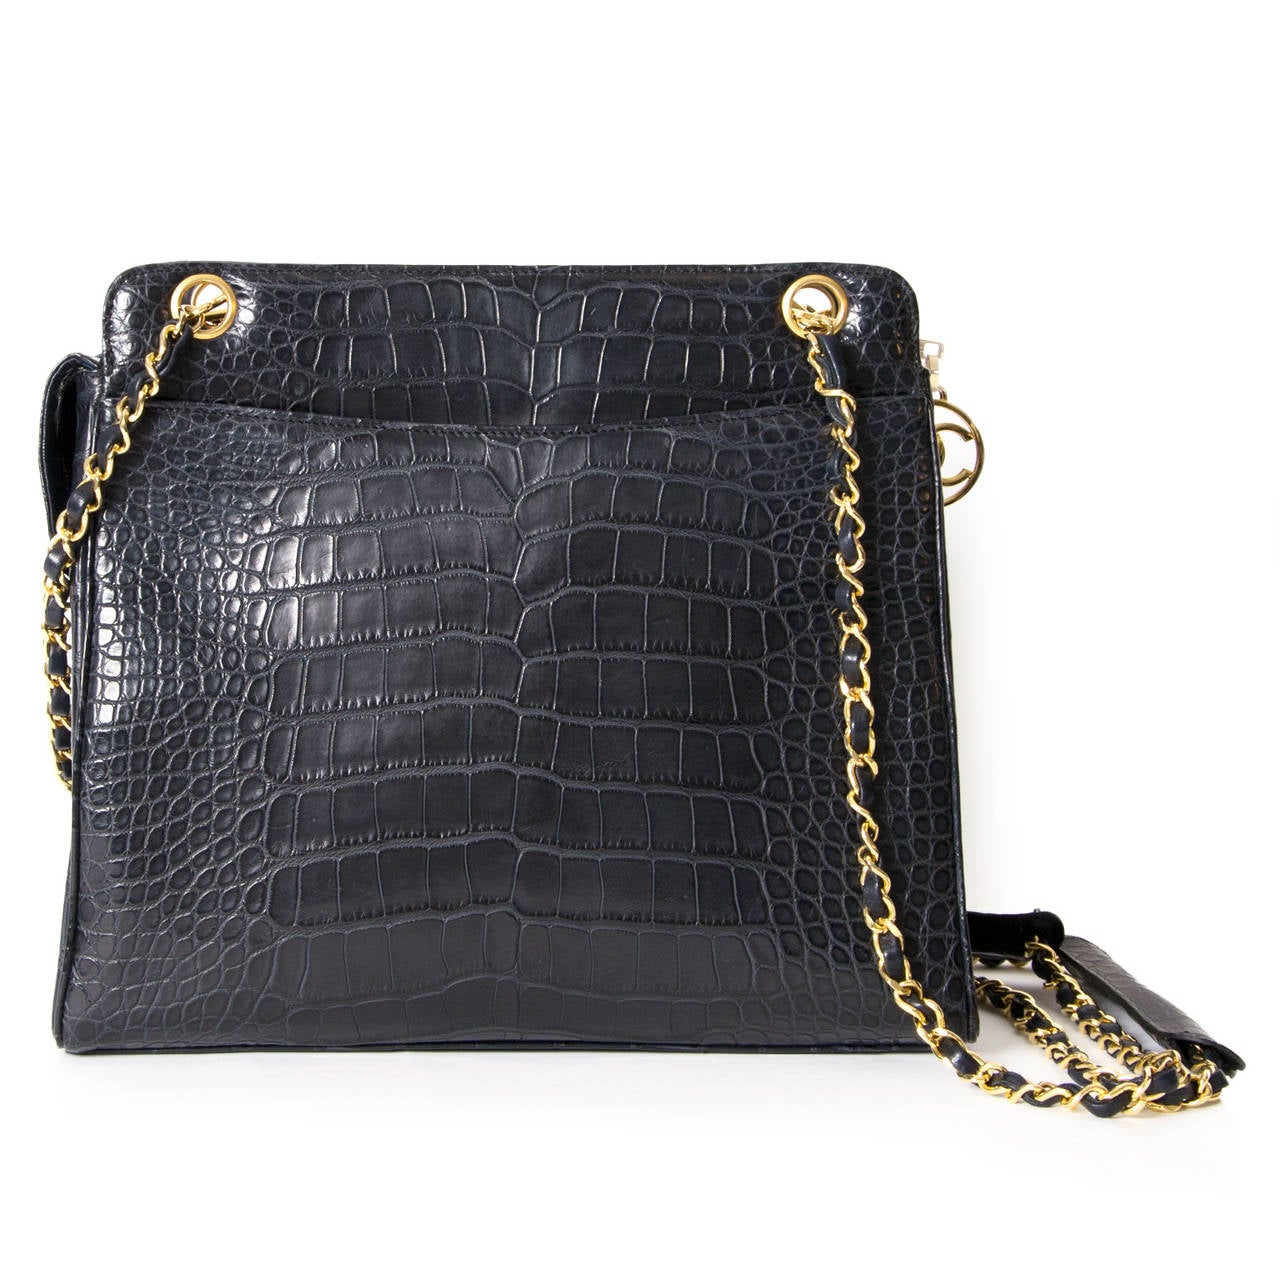 Chanel Vintage Croco Shoulder Bag At 1stdibs